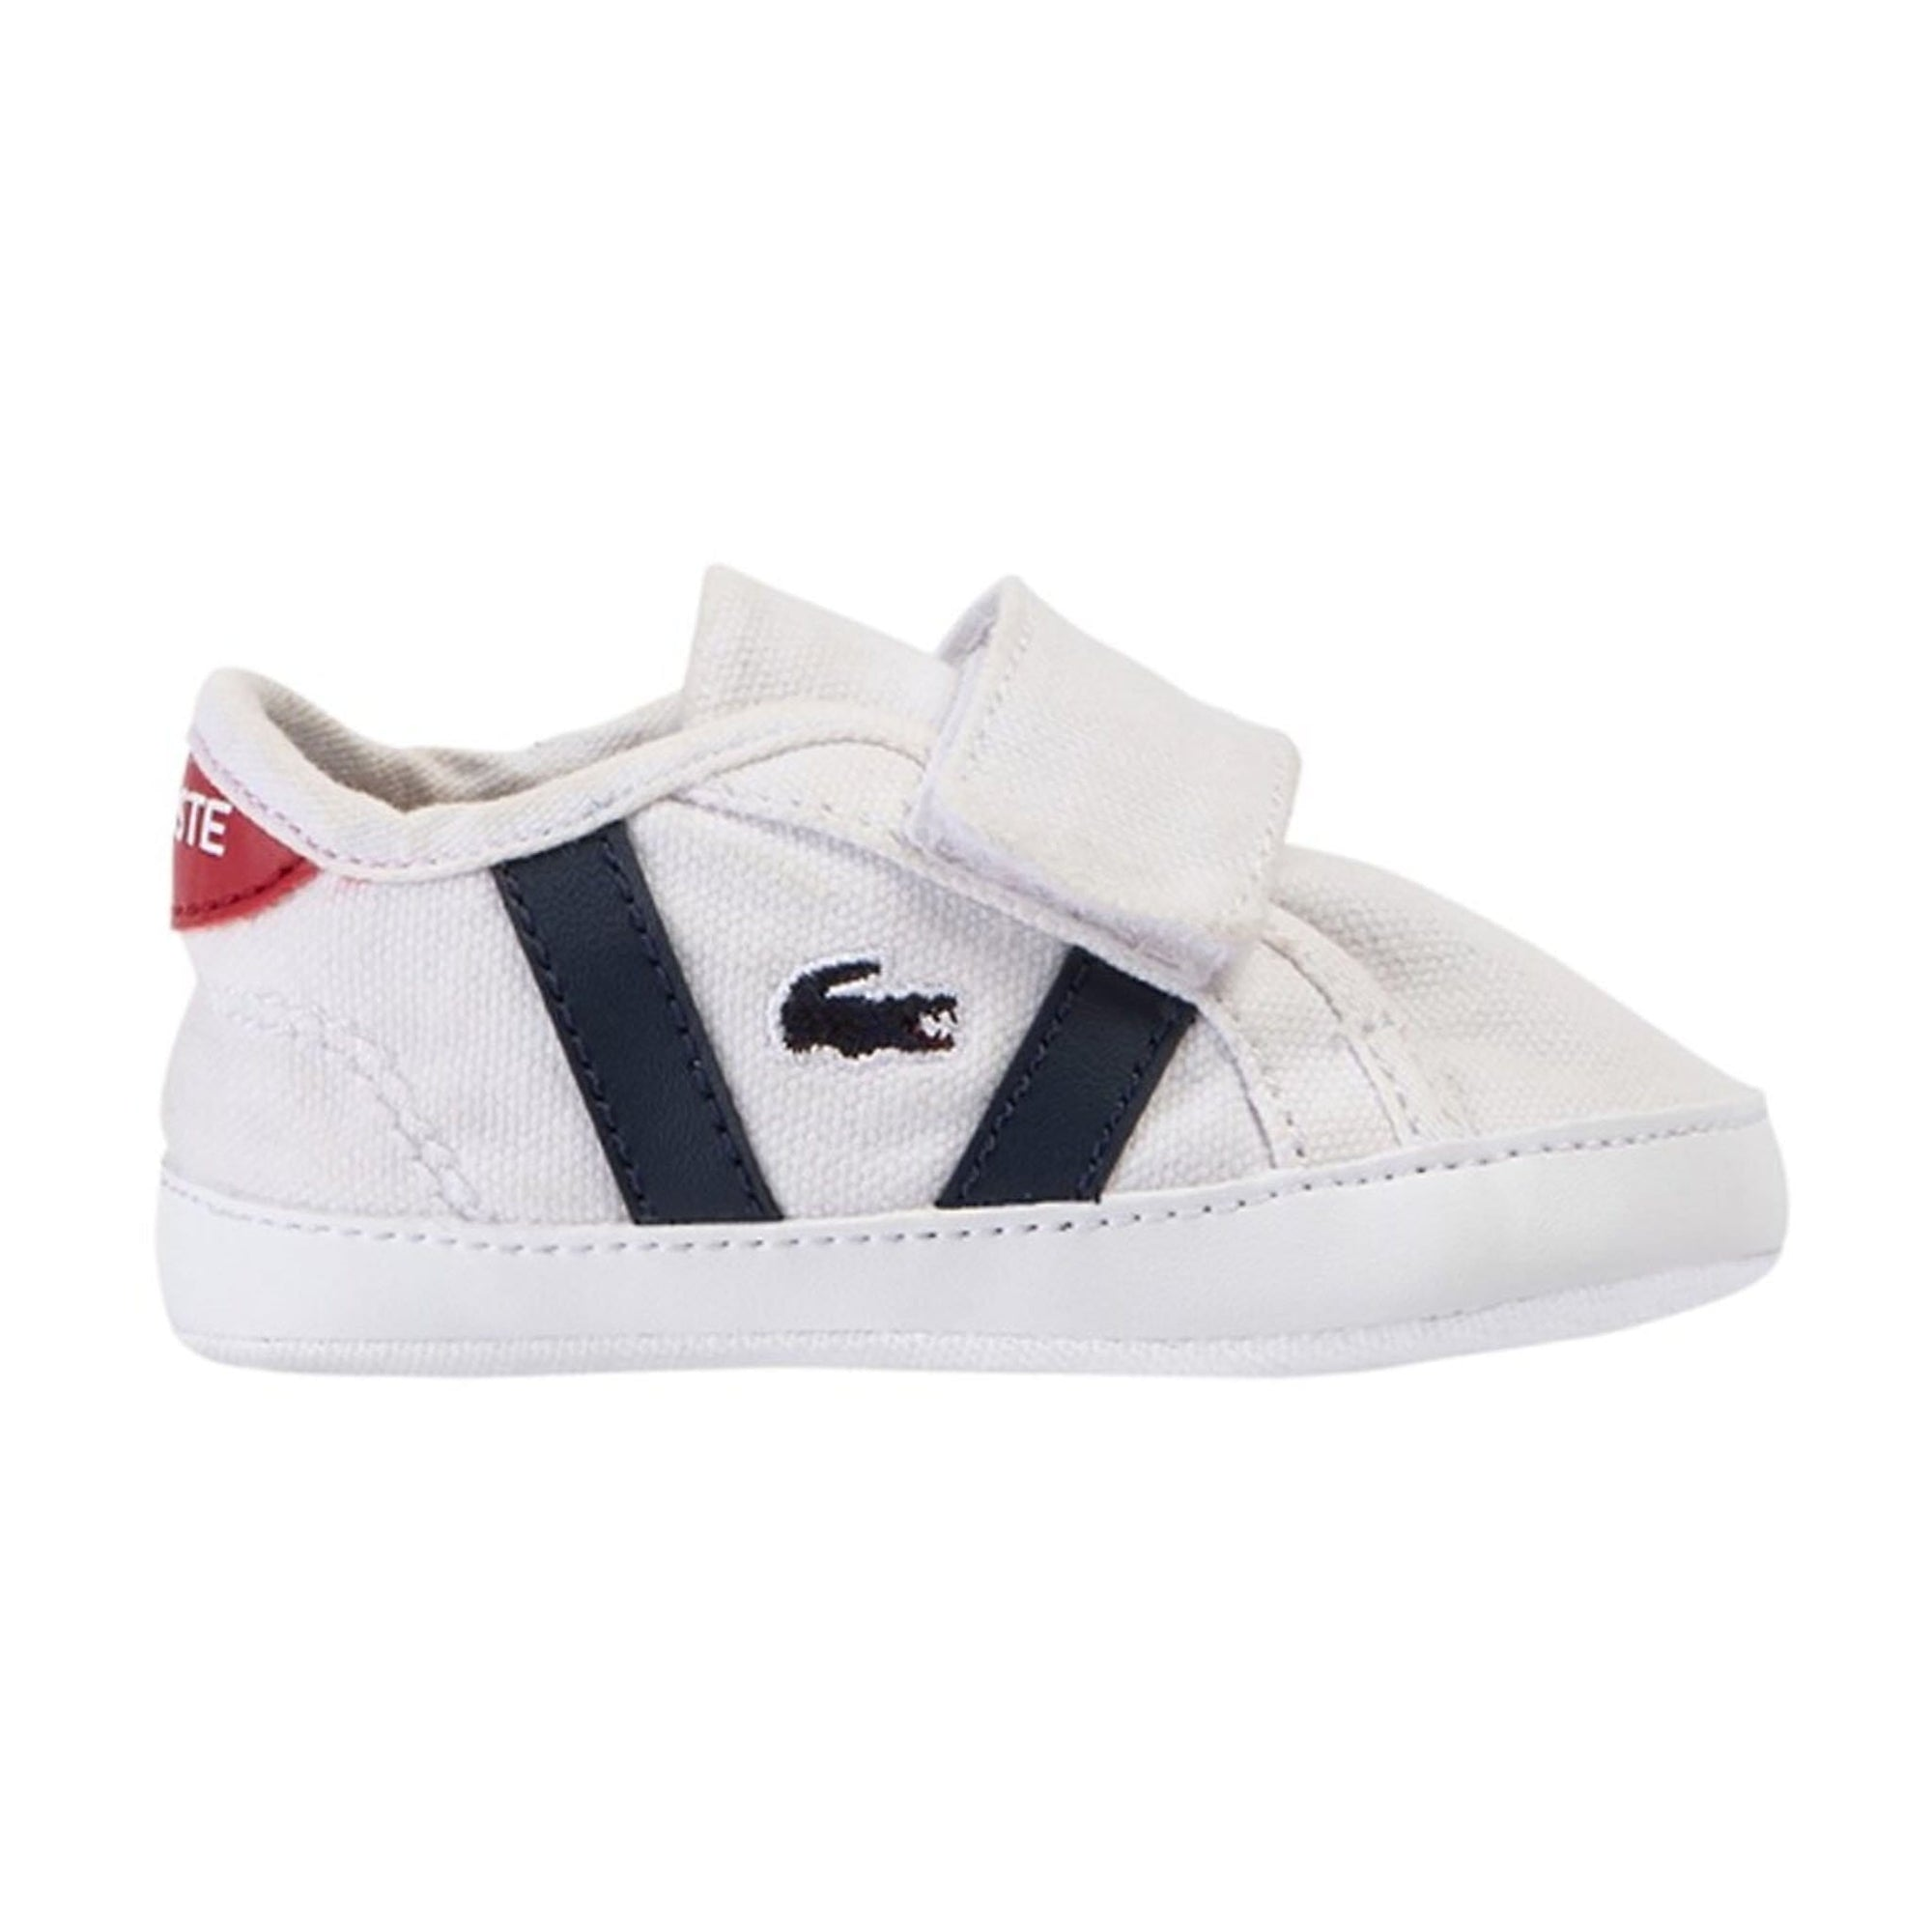 Lacoste Baby Sideline Crib Sneakers White (4685606715523)